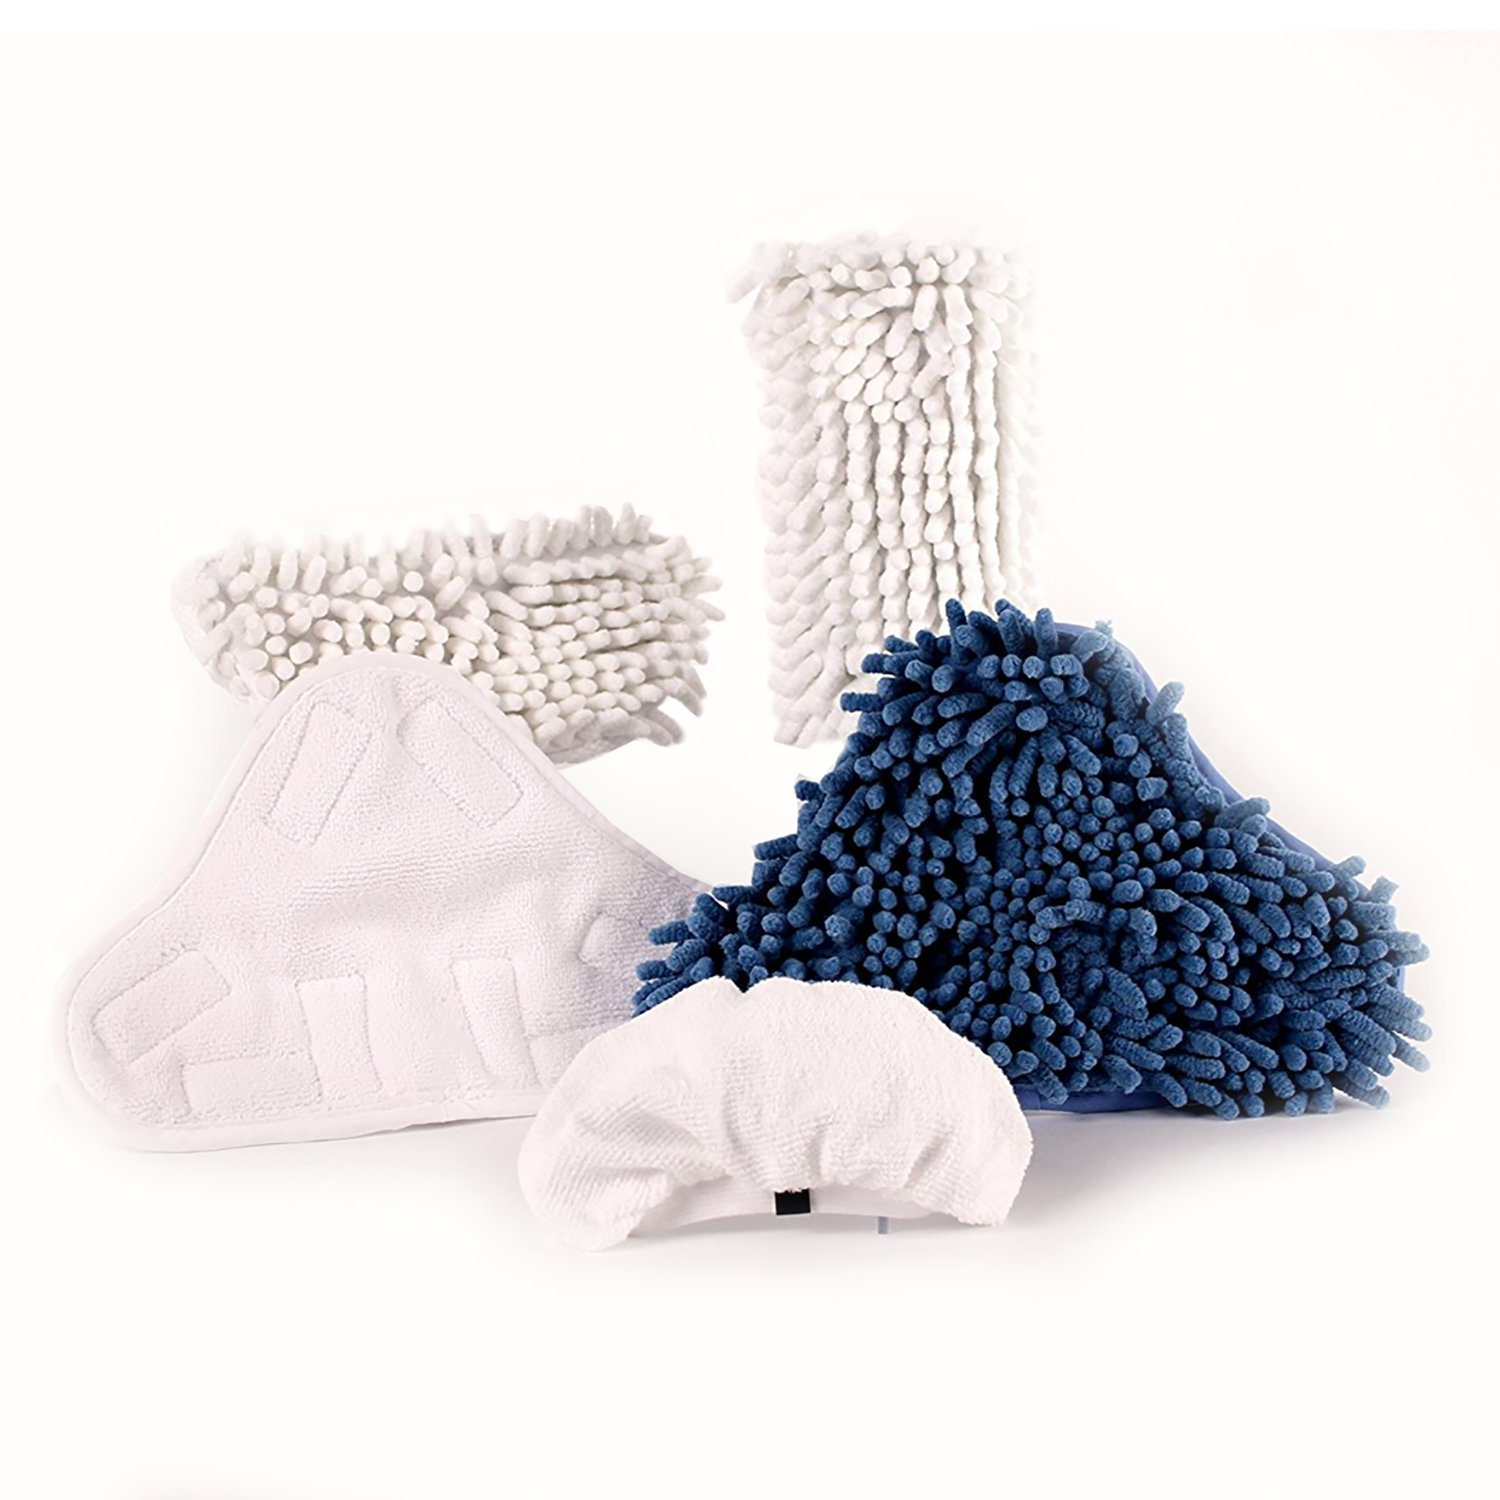 H2O MOP® X5 All Purpose Super Clean Kit - 5 Mop X5 Pads for All Your Steam Cleaning Needs Thane Canada Inc